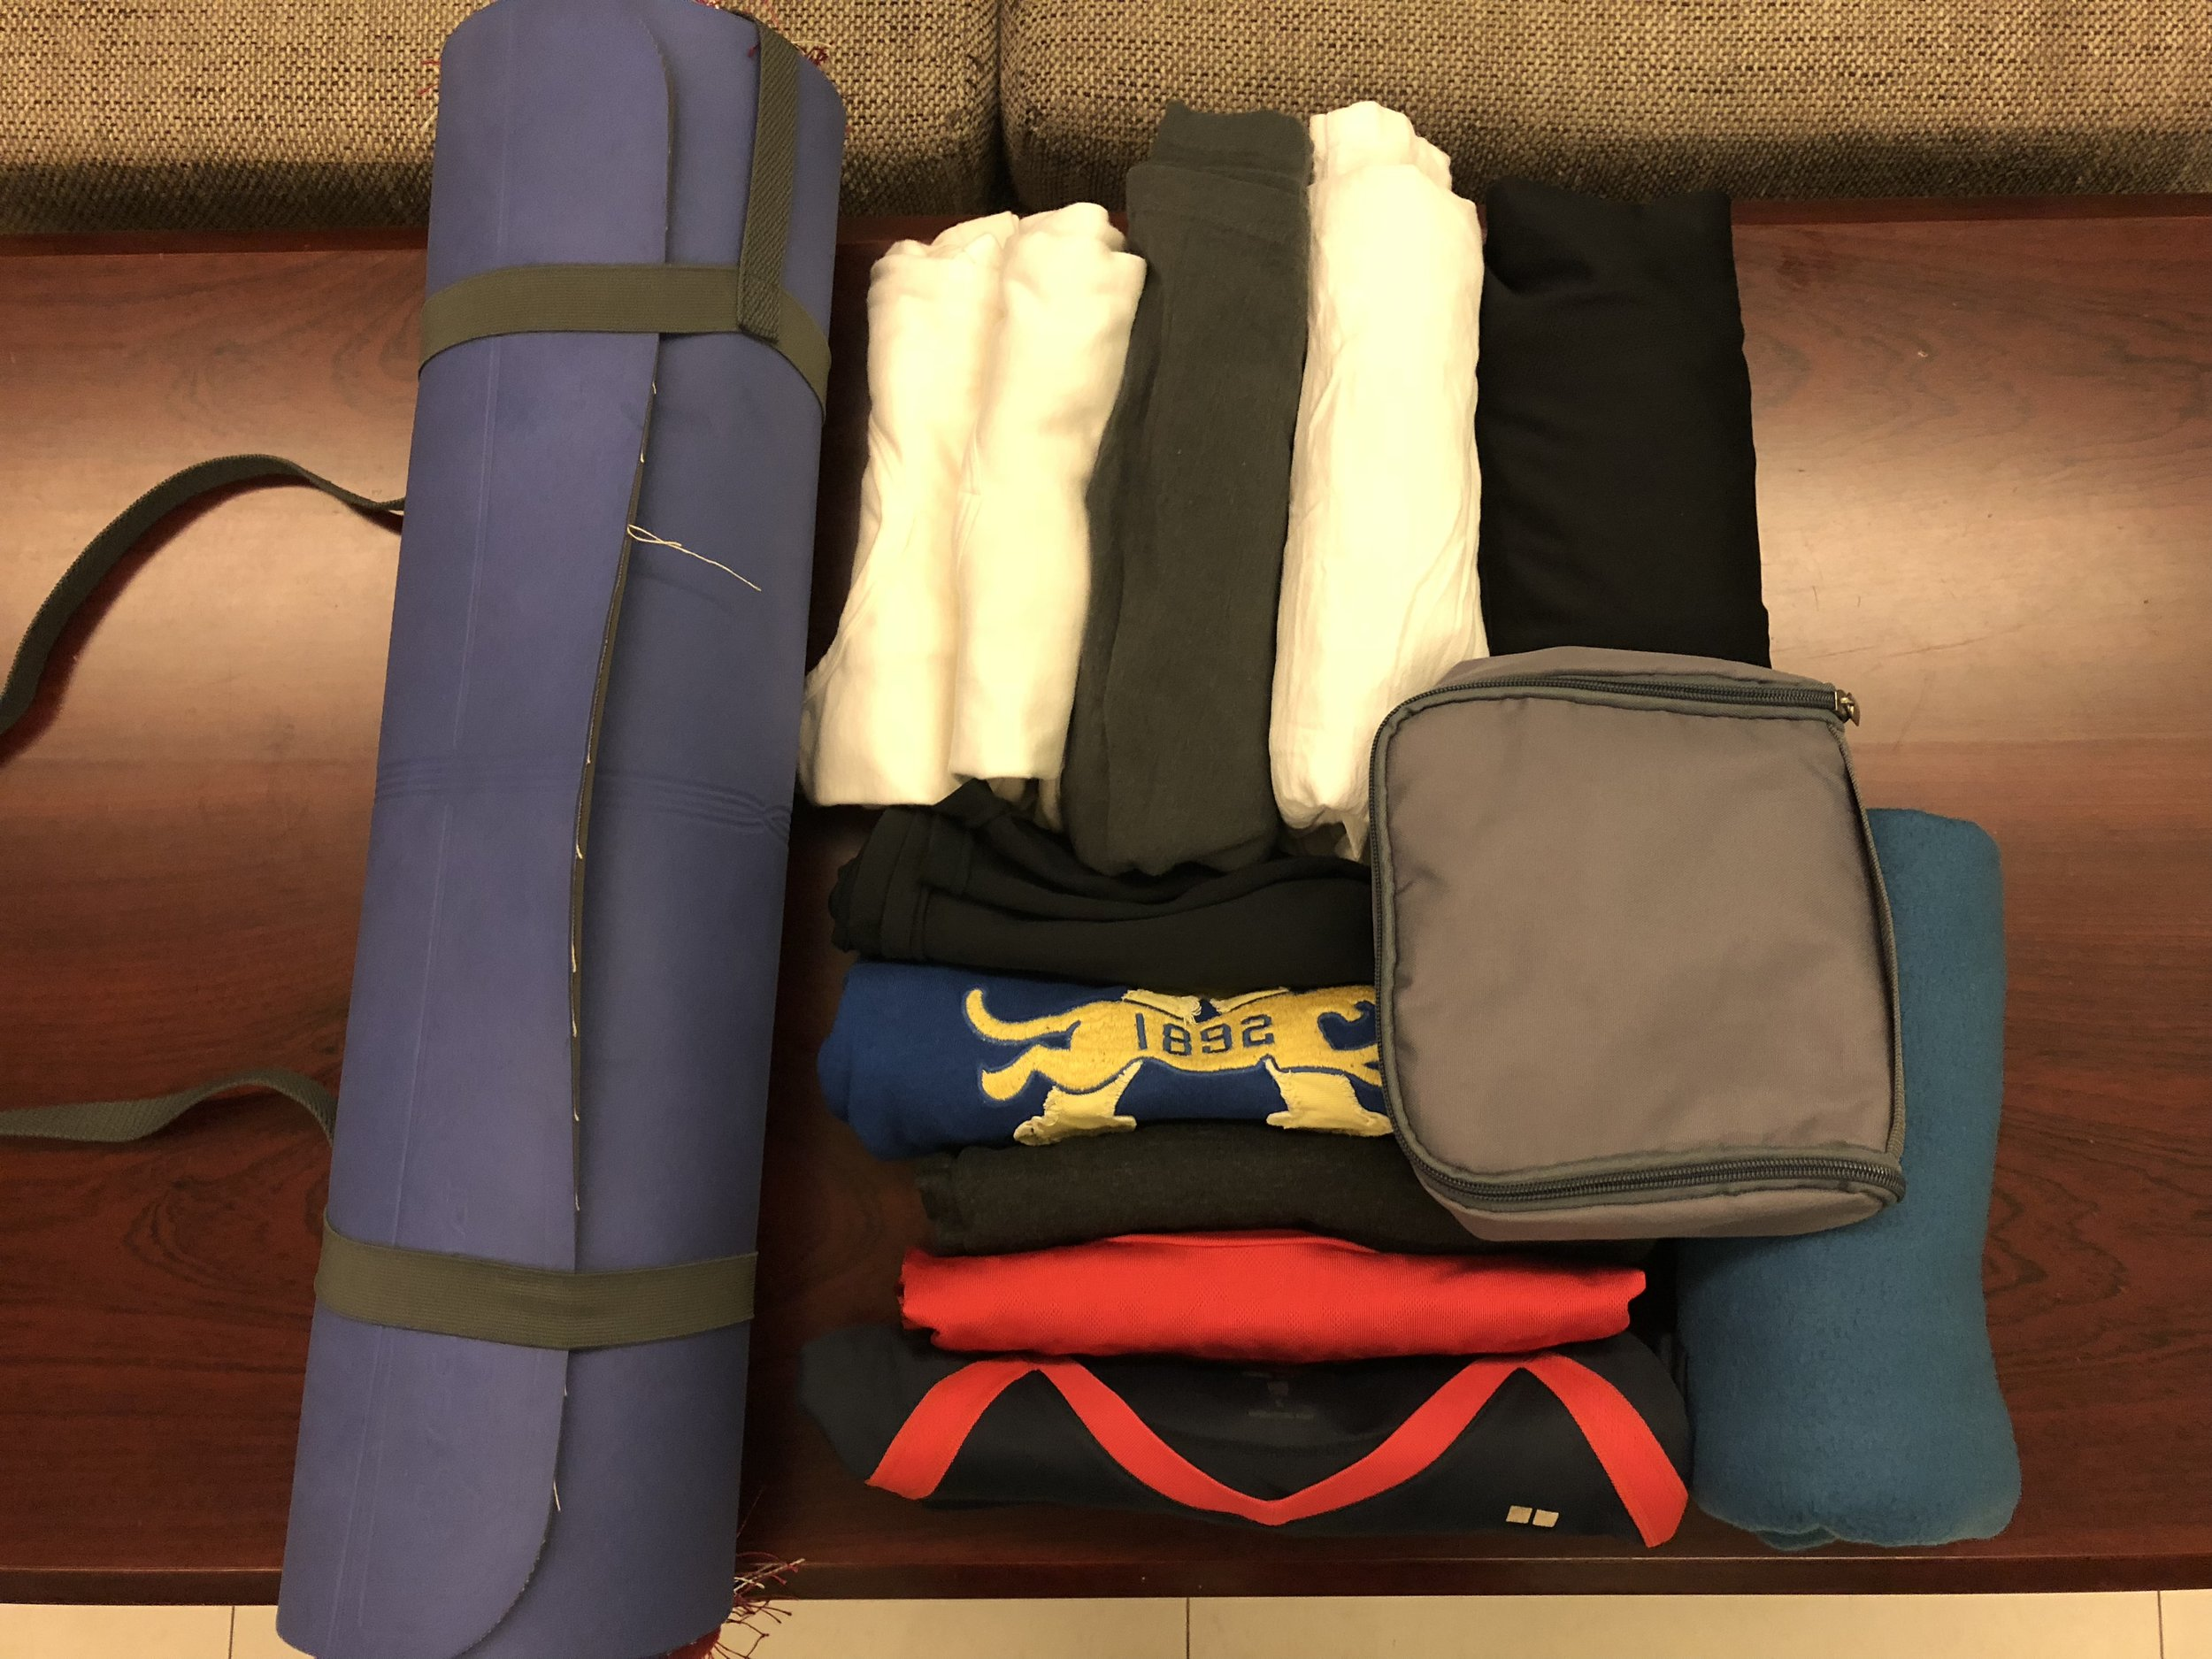 My 10 articles of clothing and a yoga/meditation mat.